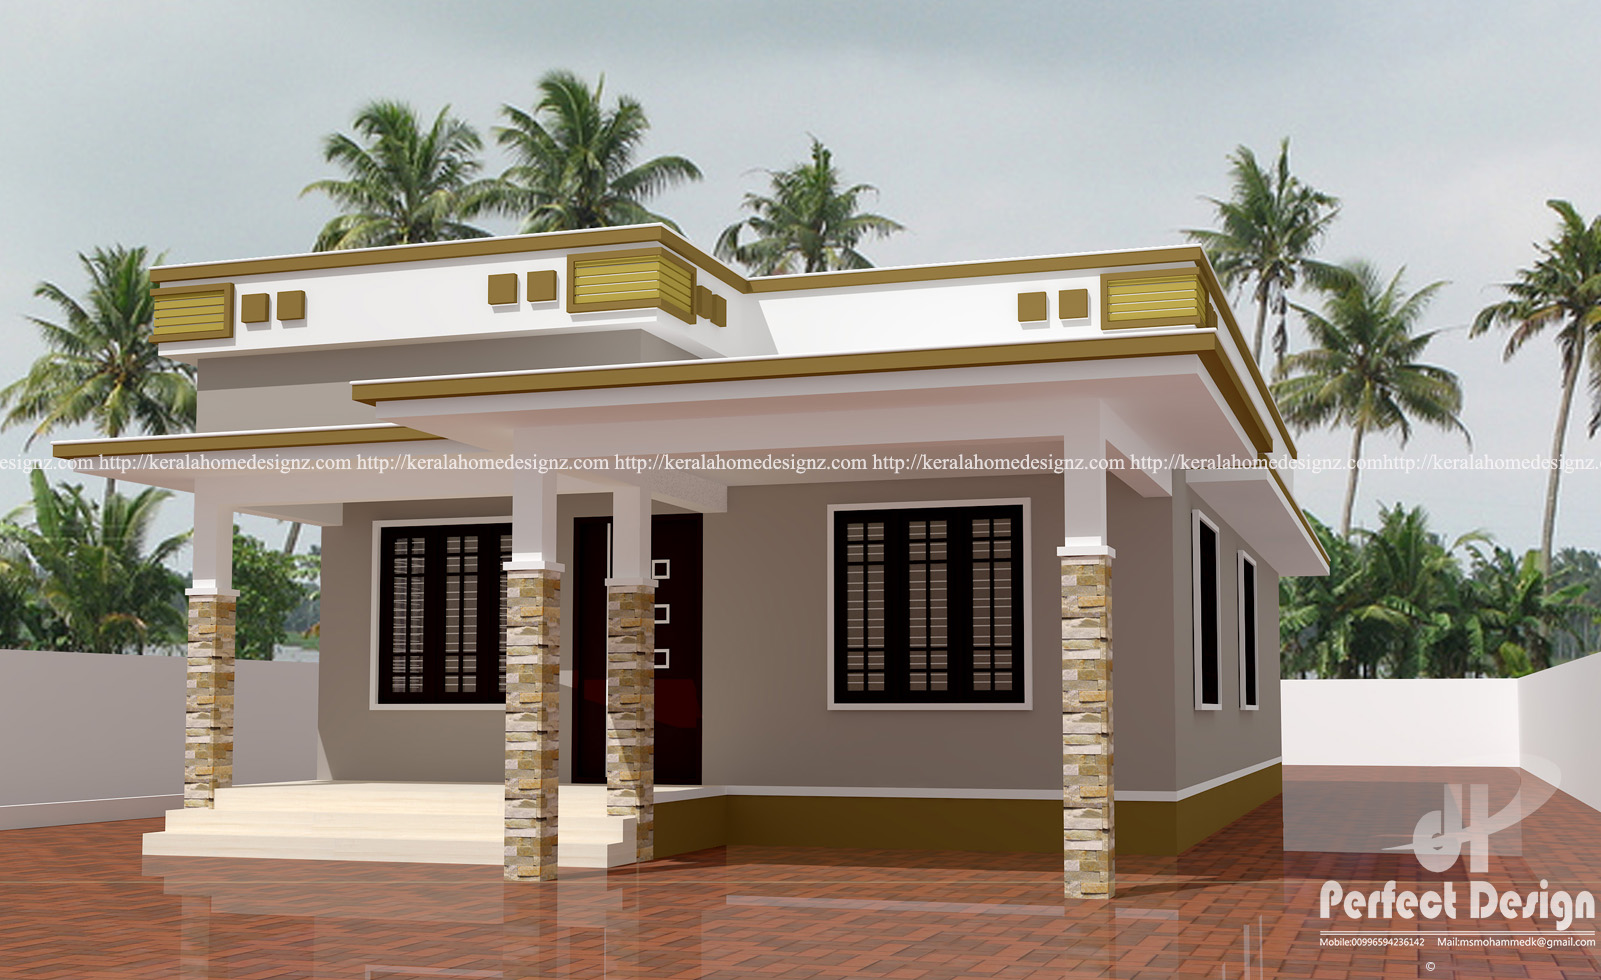 Simple contemporary home design kerala home design for House design websites free